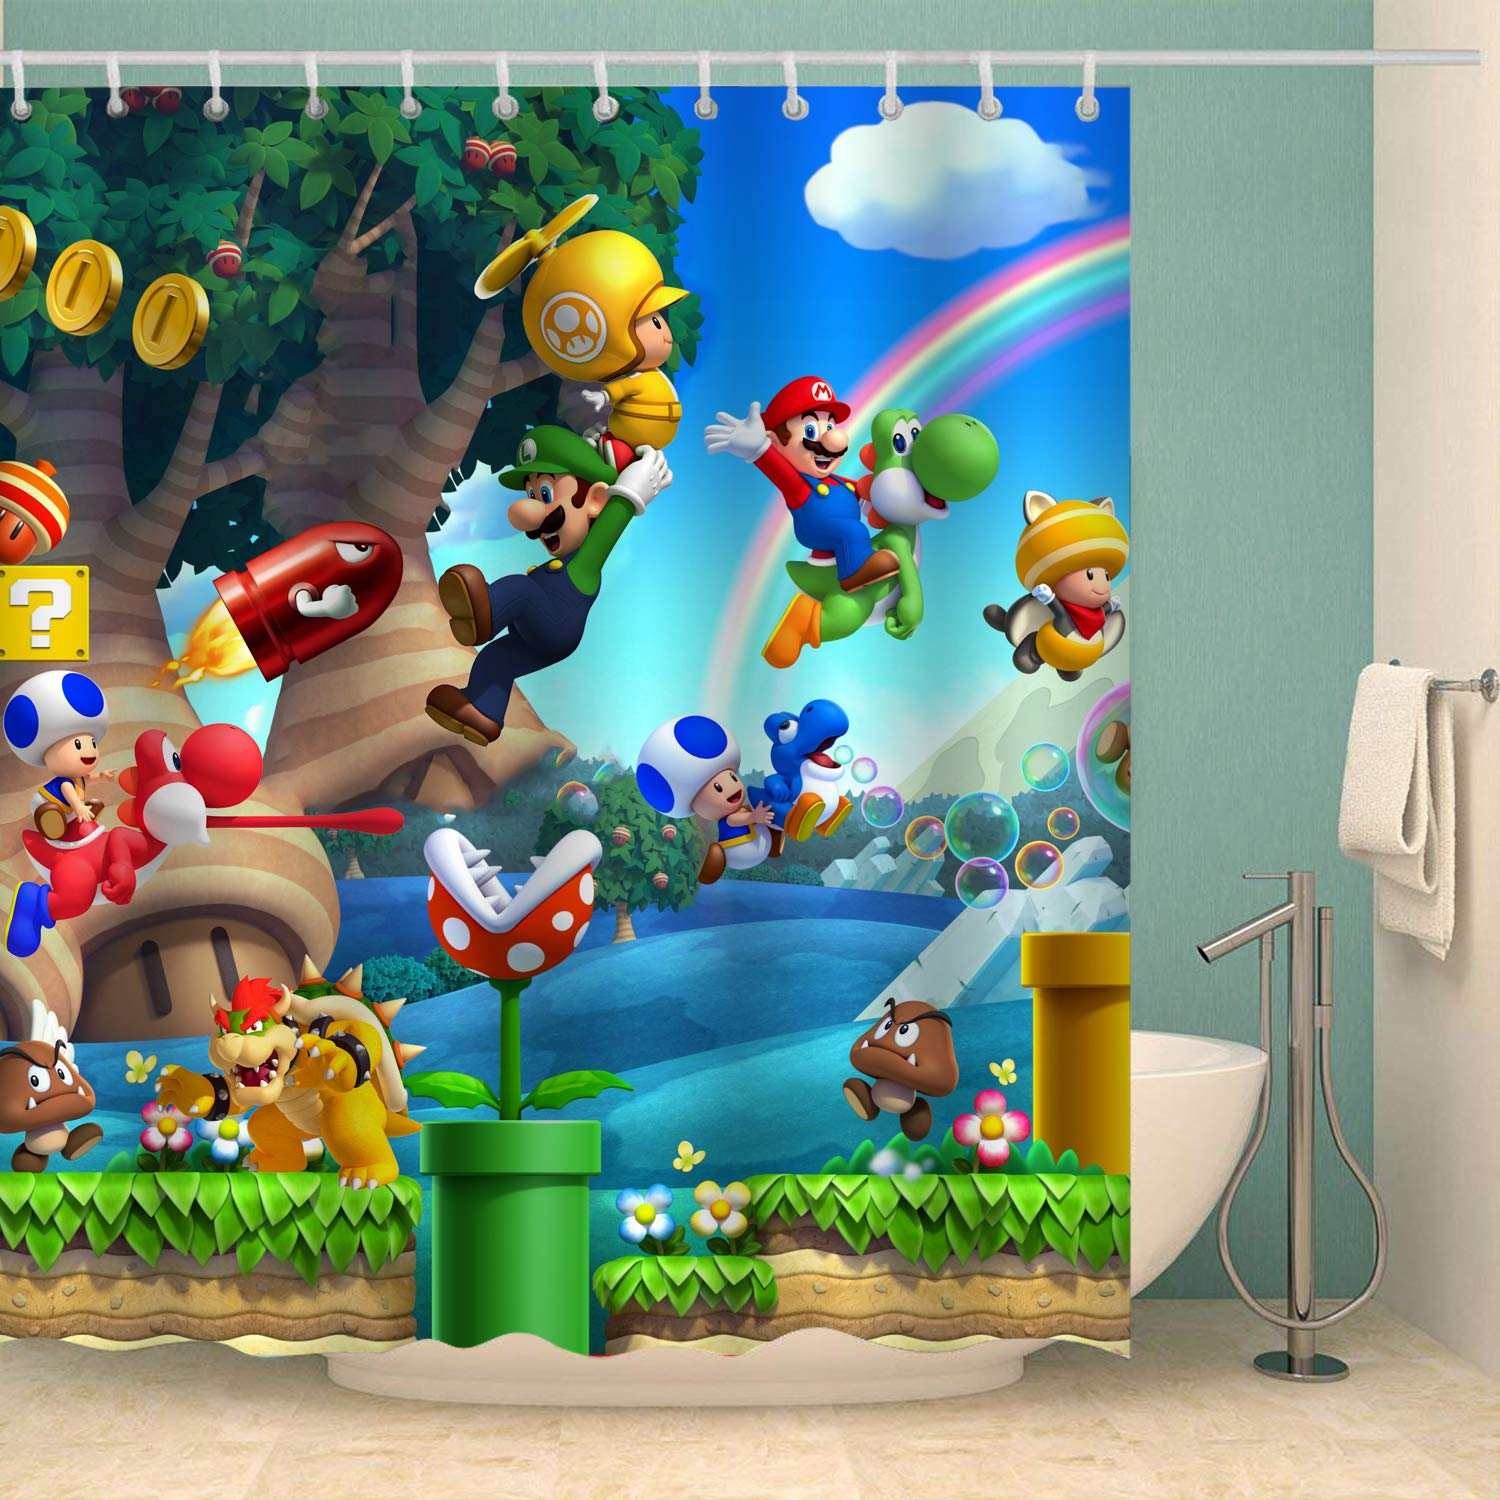 Aoskin Custom Super Mario Bros Game Shower Curtain Waterproof with Color Bathroom Decoration Size of 66x72 Inches